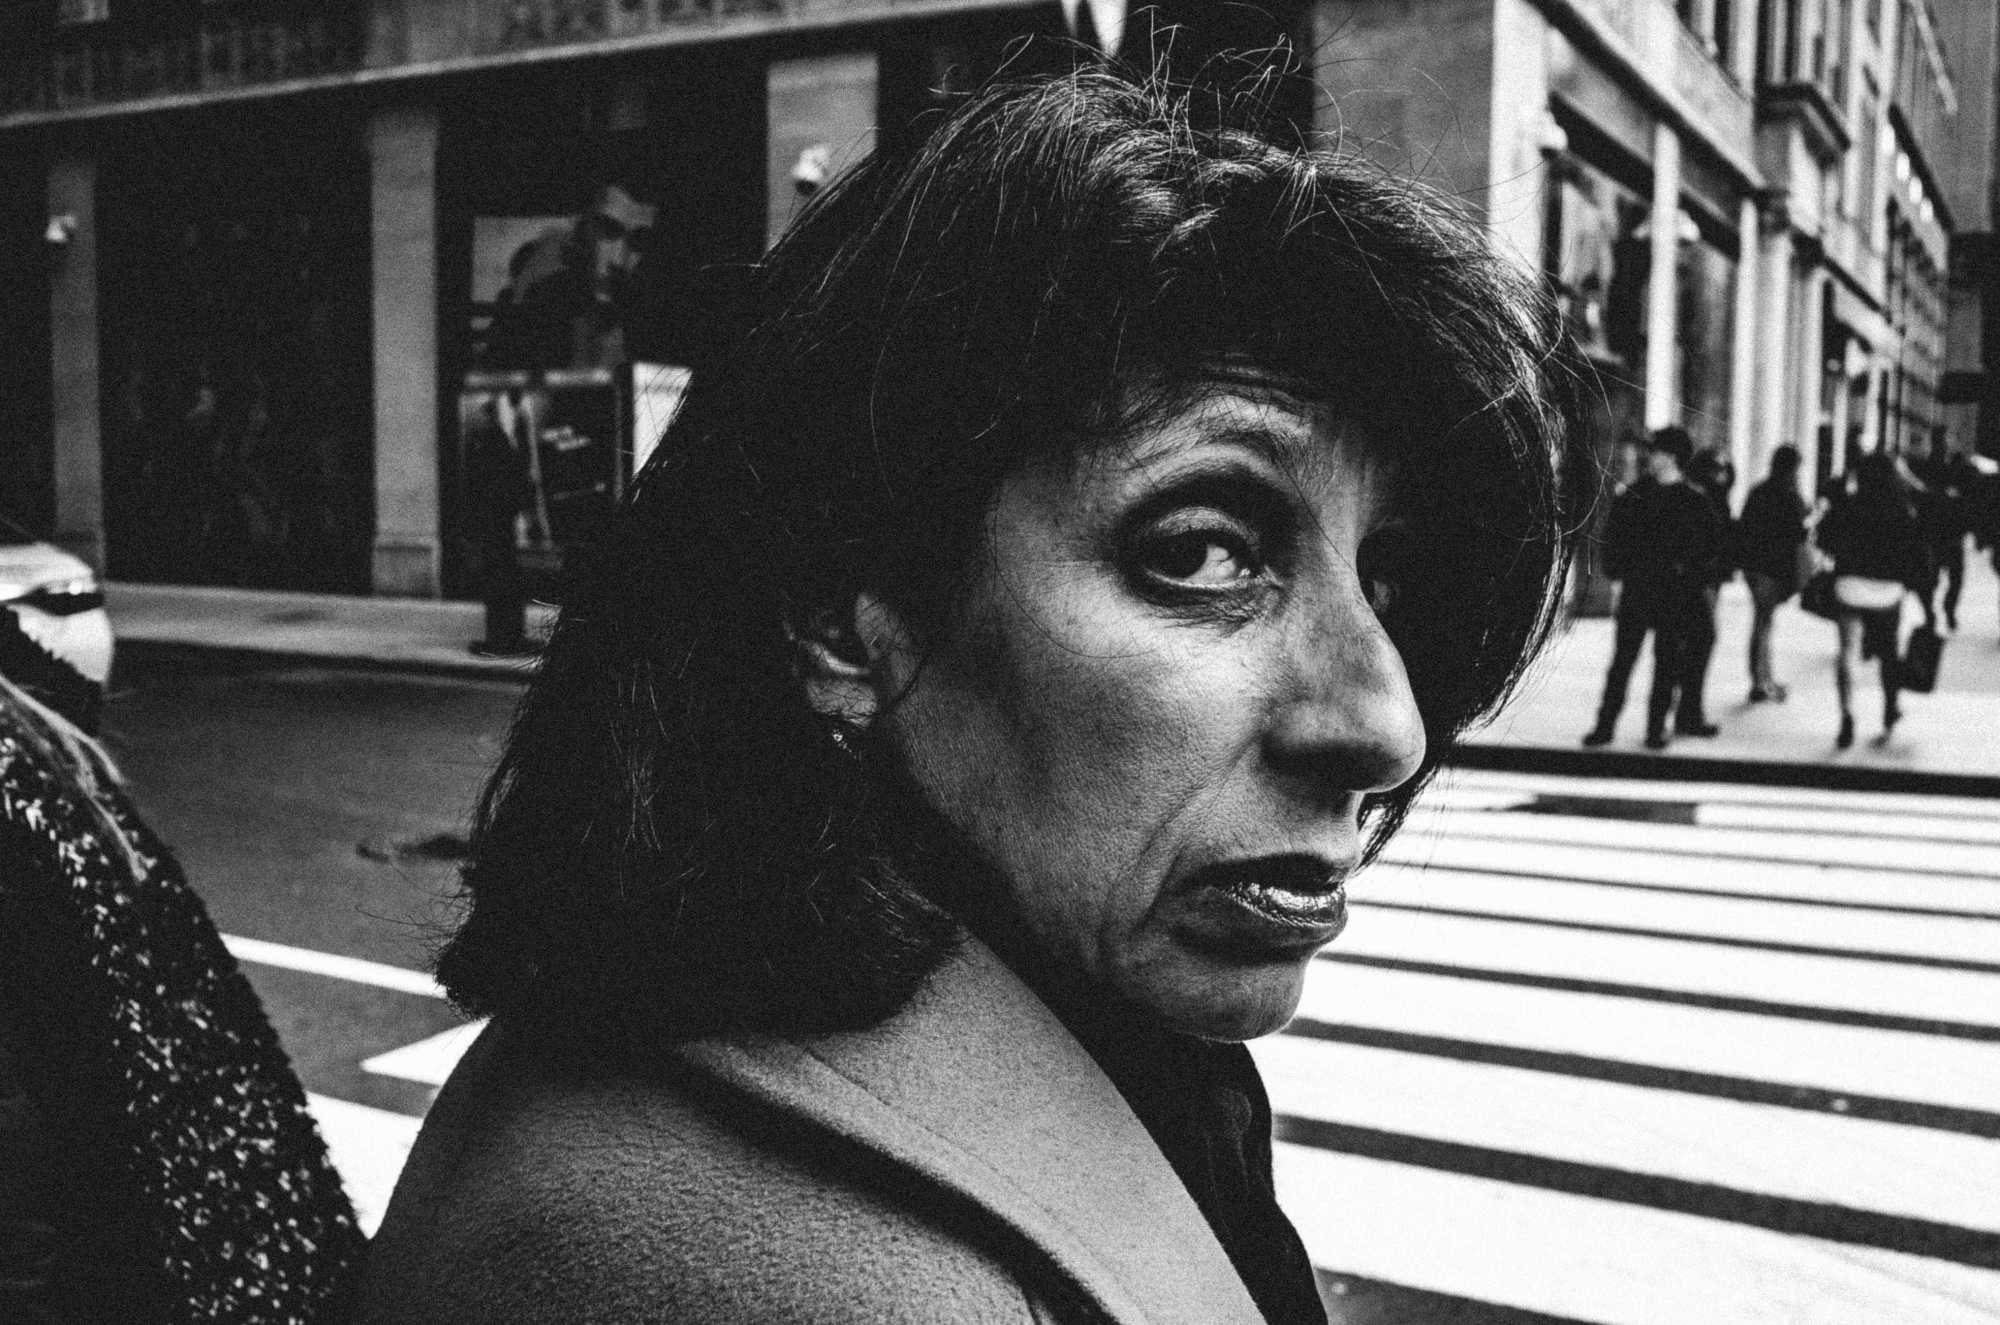 Follow Your Gut in Street Photography